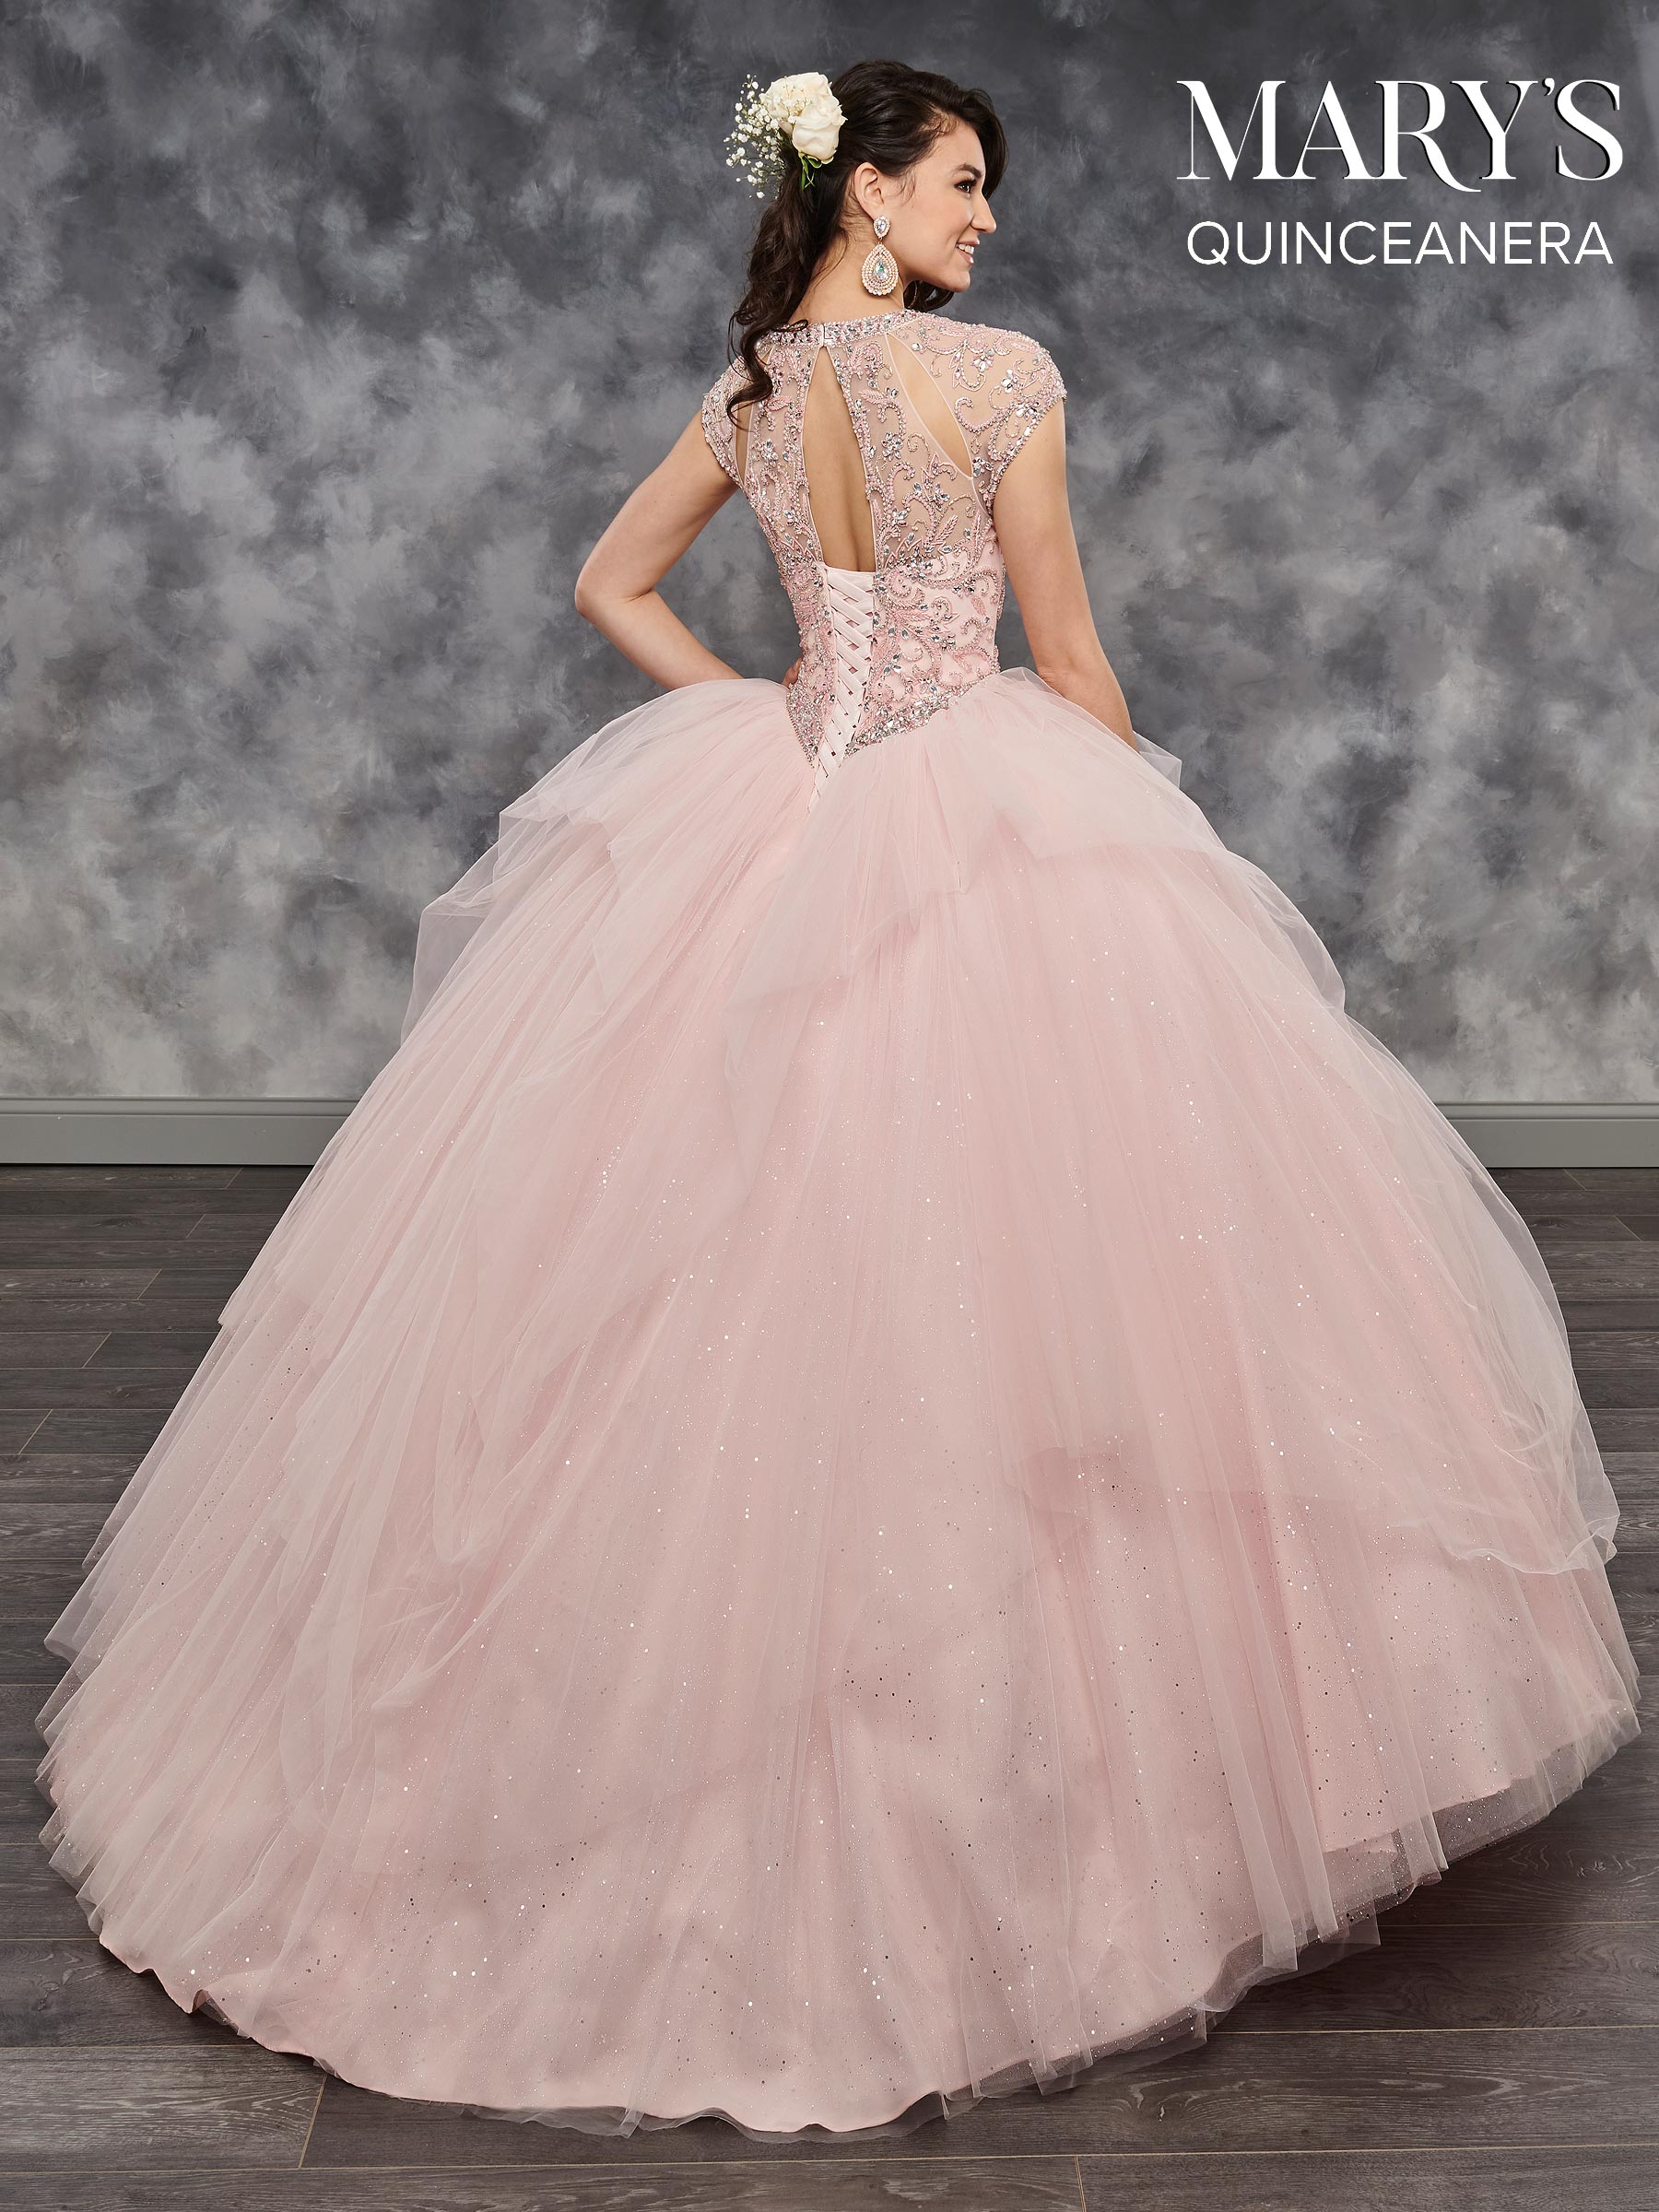 Marys Quinceanera Dresses | Mary's Quinceanera | Style - MQ2039